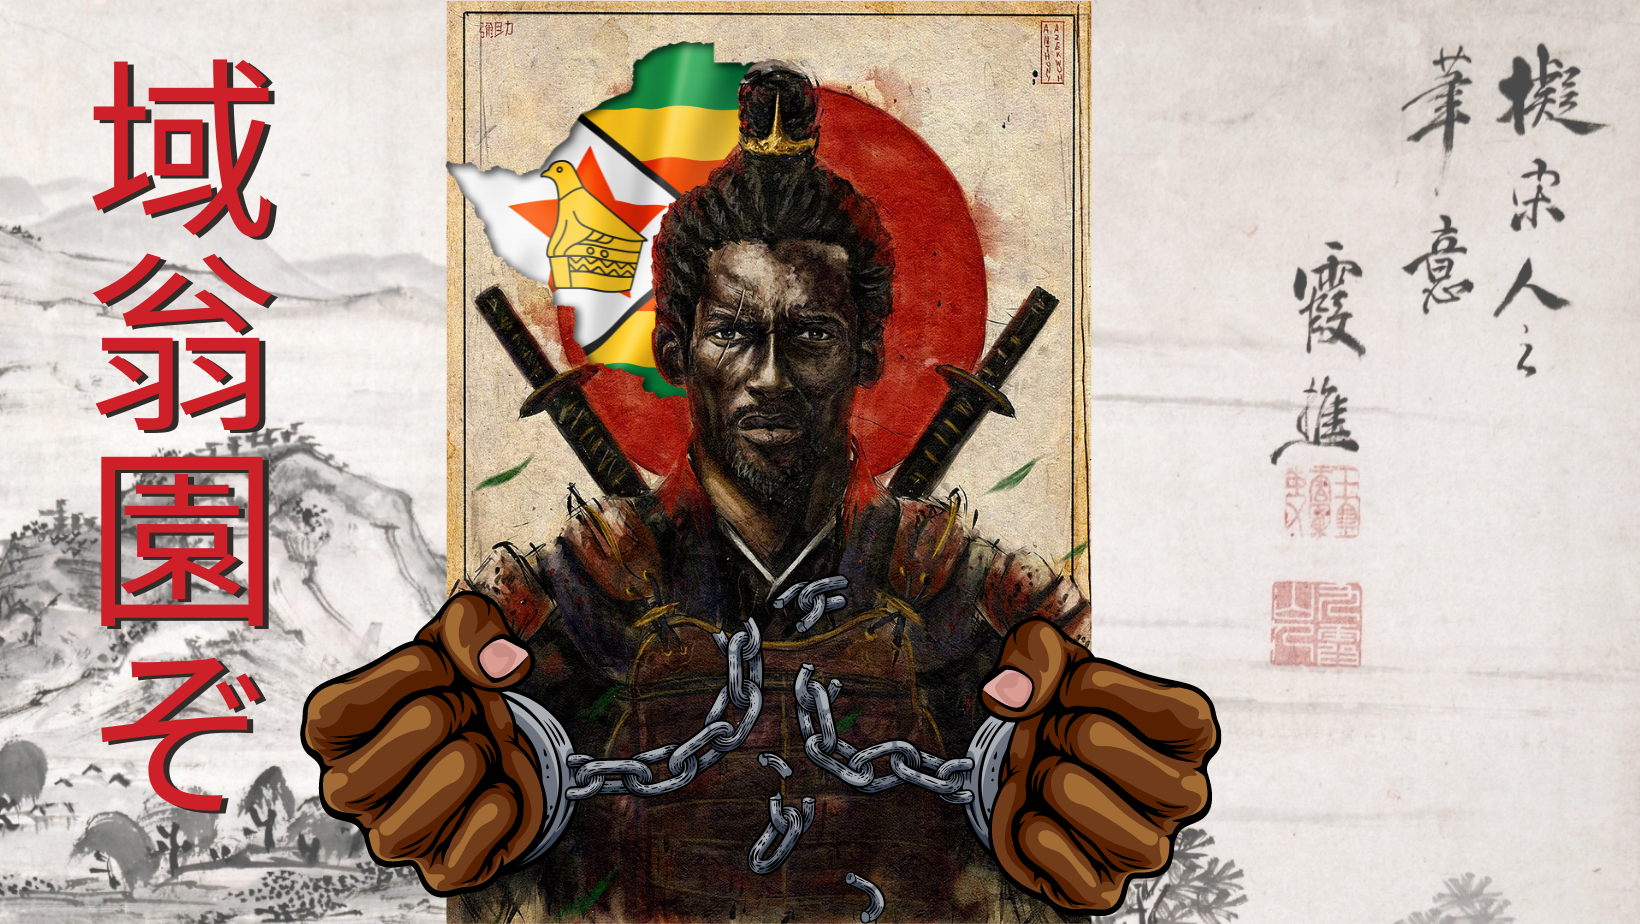 """A landcape illustration with Japanese writing that reads """"Yasuke The African Samurai"""".  The African slave Yasuke is illustrated wearing samurai clothing and two katana swords on his back. He has his two hands held out in front of him with broken slave chains handcuffed to them. Behind him is a large poster of a Japanese flag with a section ripped out; in the ripped section the Mozambique flag can be seen."""